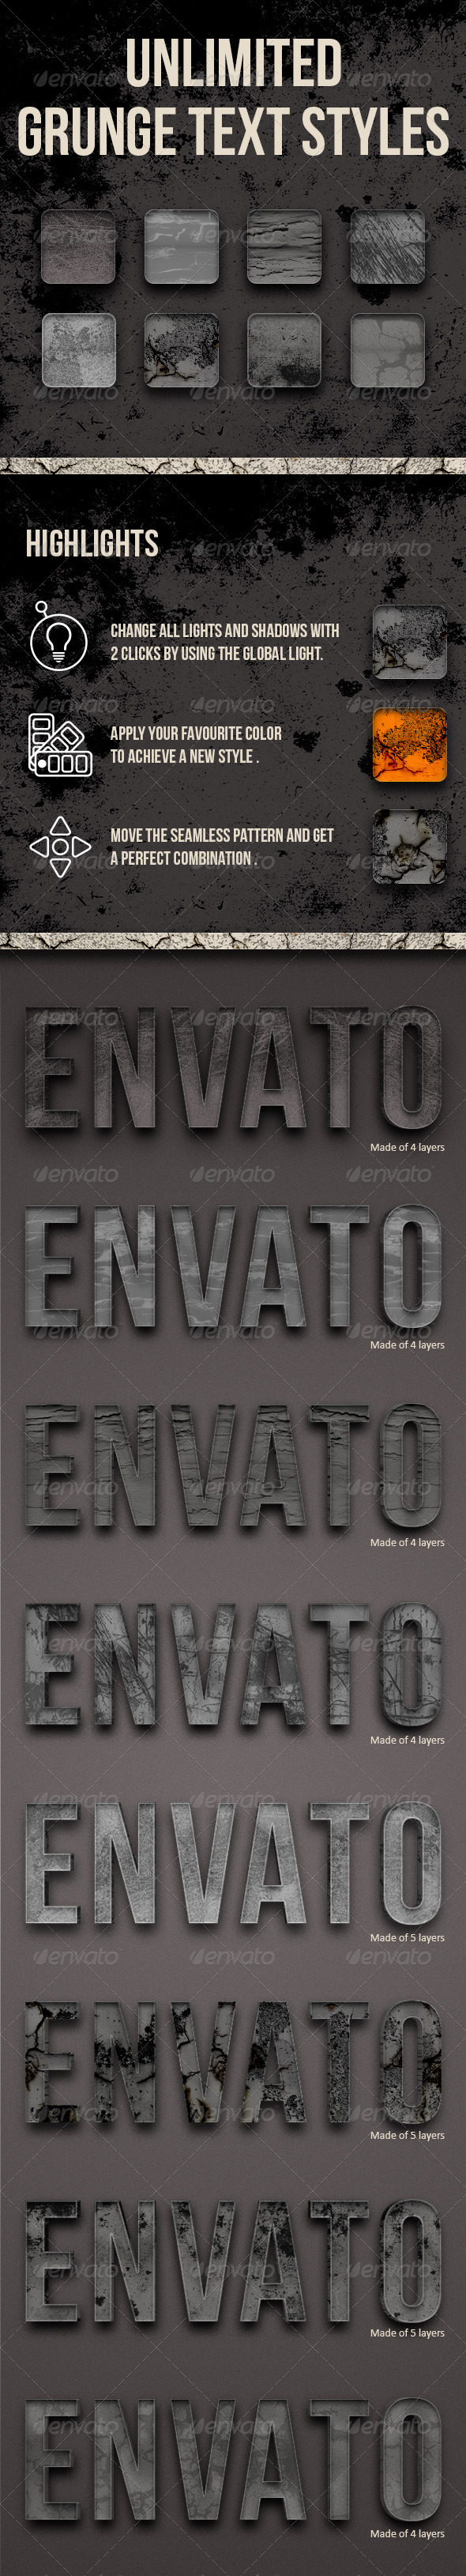 Grunge Text Styles - Unlimited - Text Effects Styles